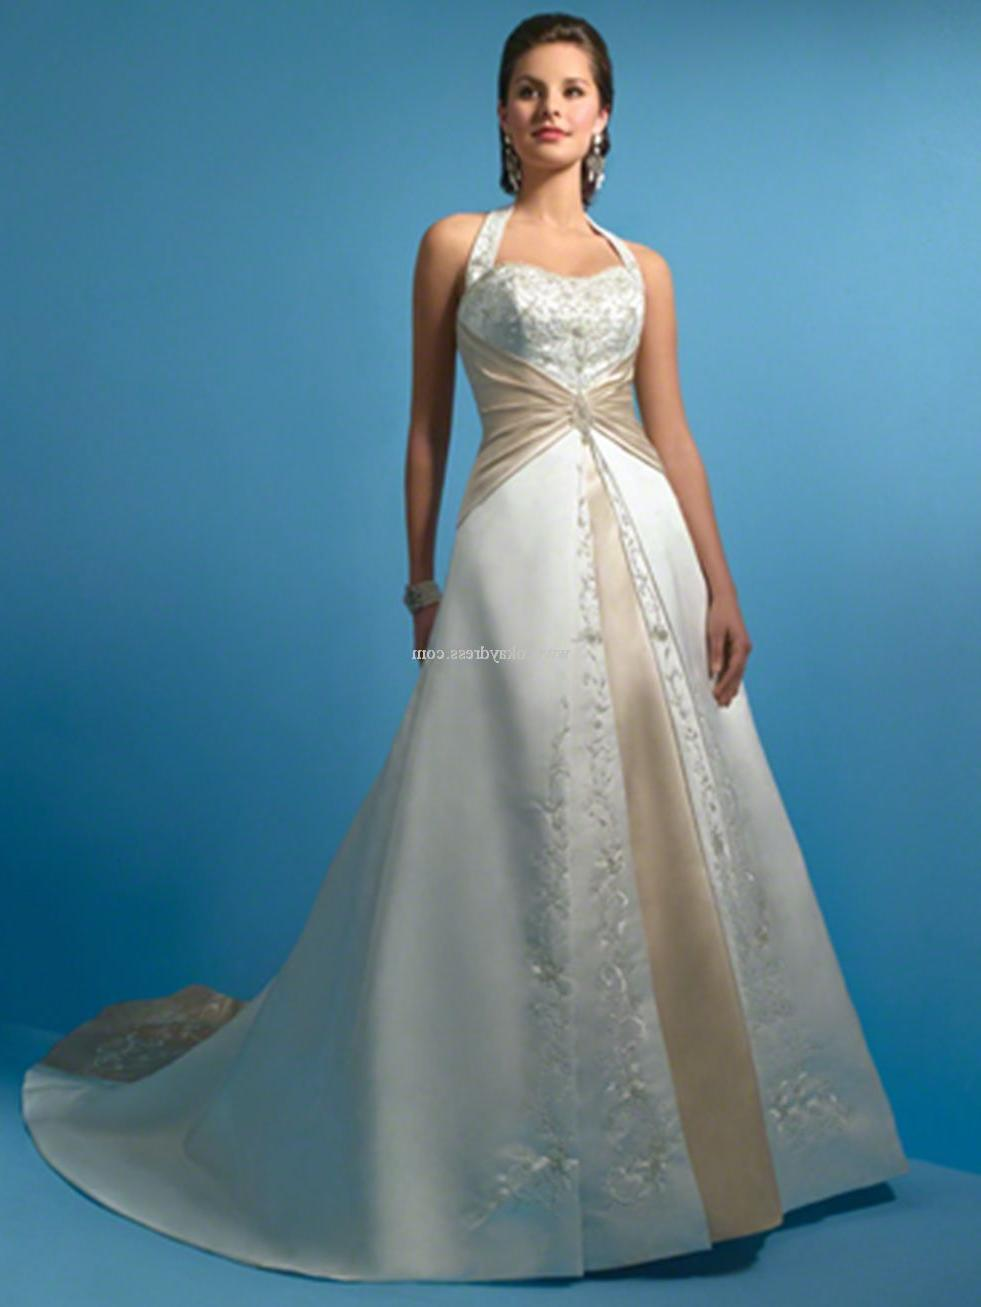 Casablanca 2023 Bridal Gown